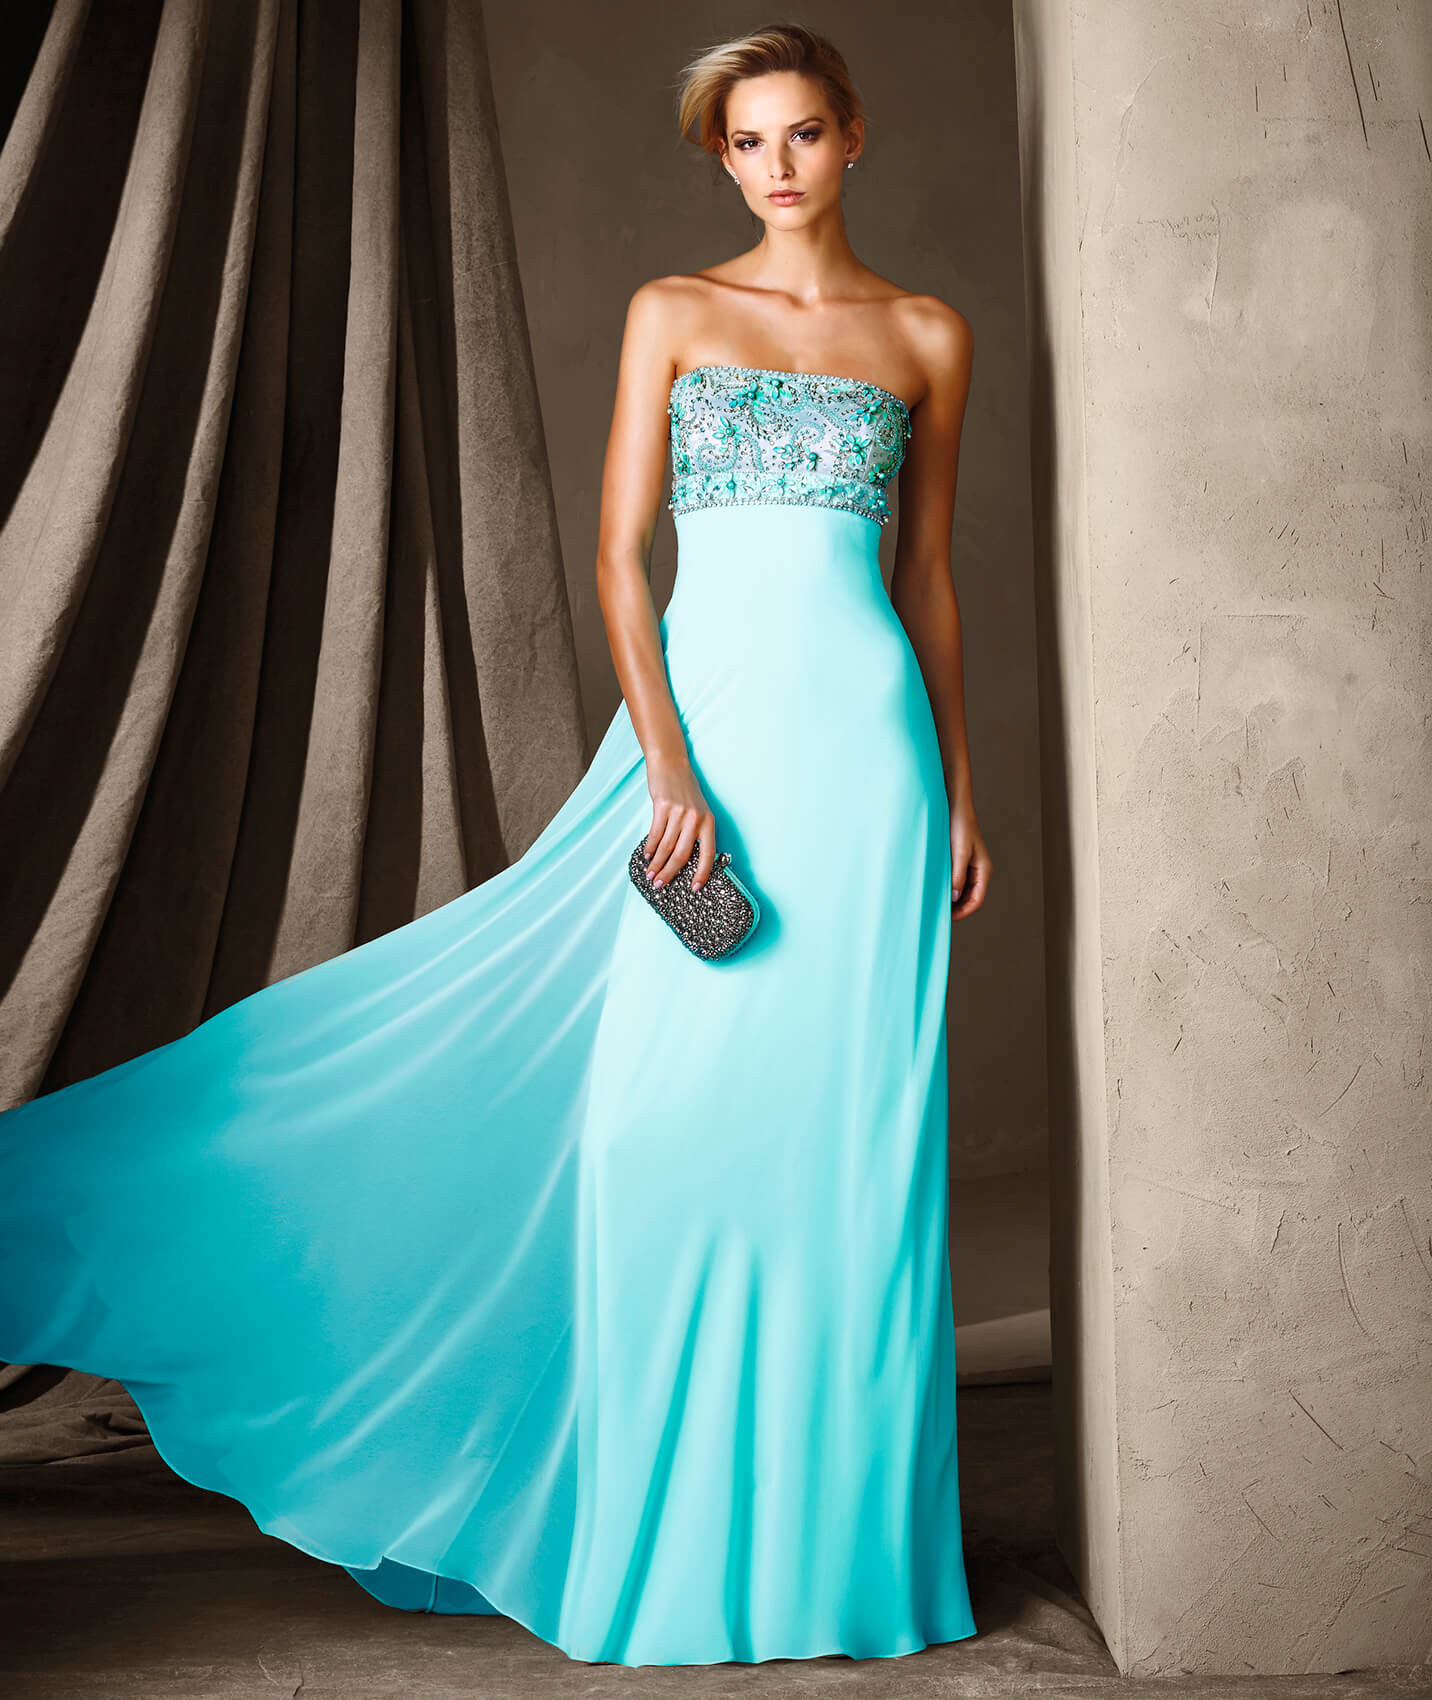 Stylish long party dress with a flaring gauze overskirt. All eyes ...